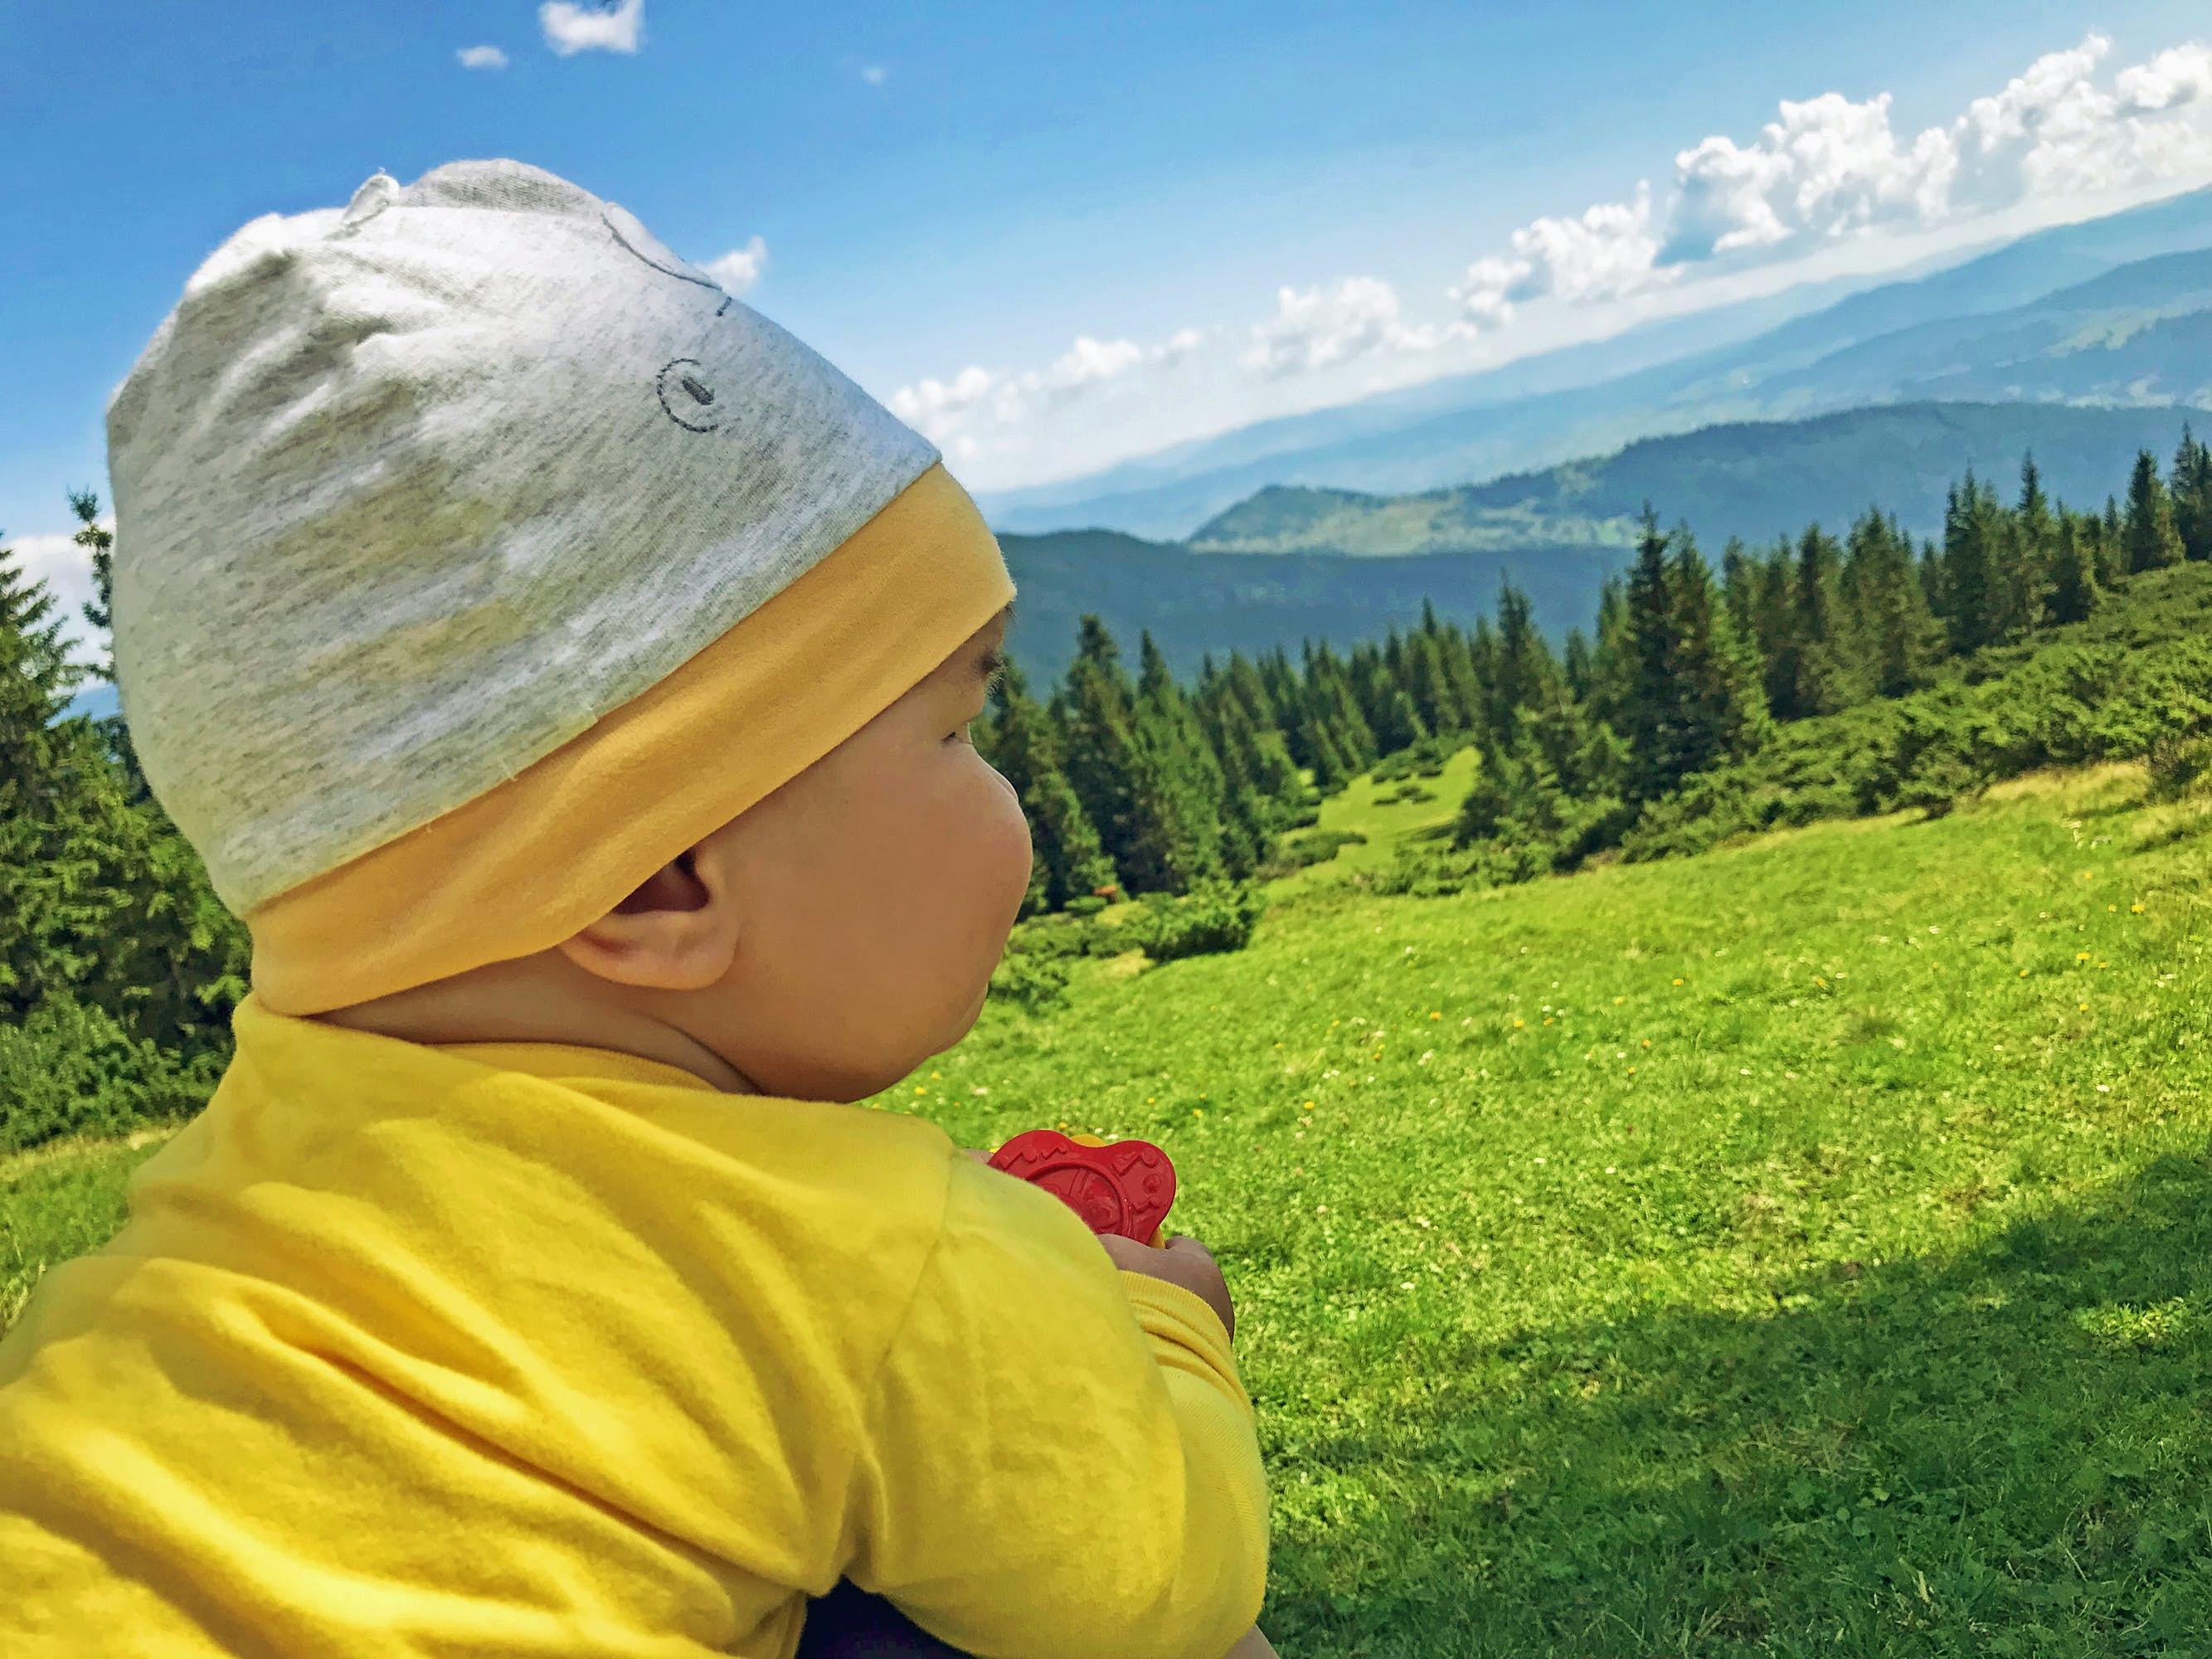 A very young baby wears bright yellow pajamas and a knit hat as he looks out on a mountain vista; kids outdoors adventures